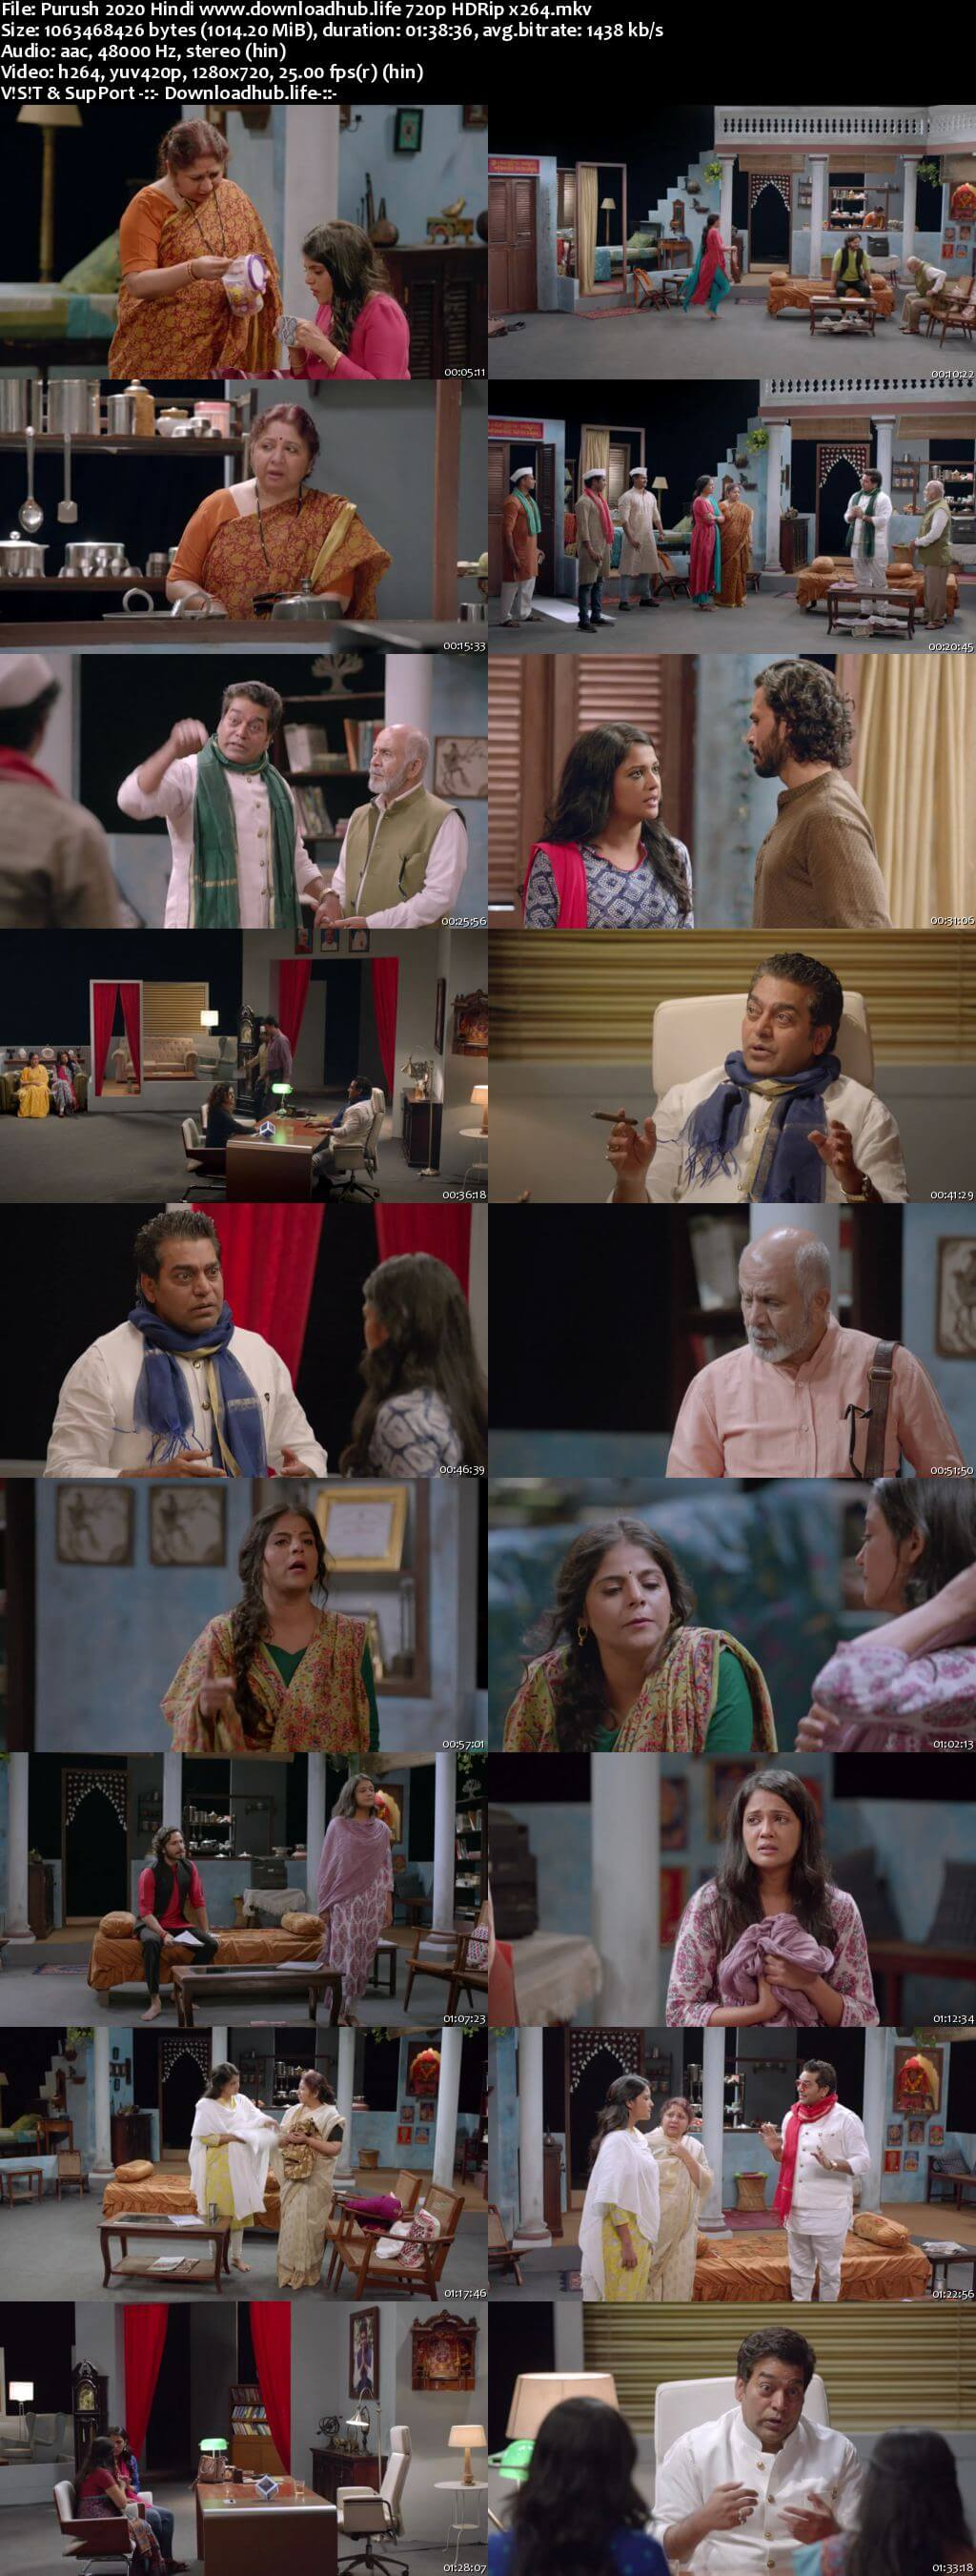 Purush 2020 Hindi 720p HDRip x264